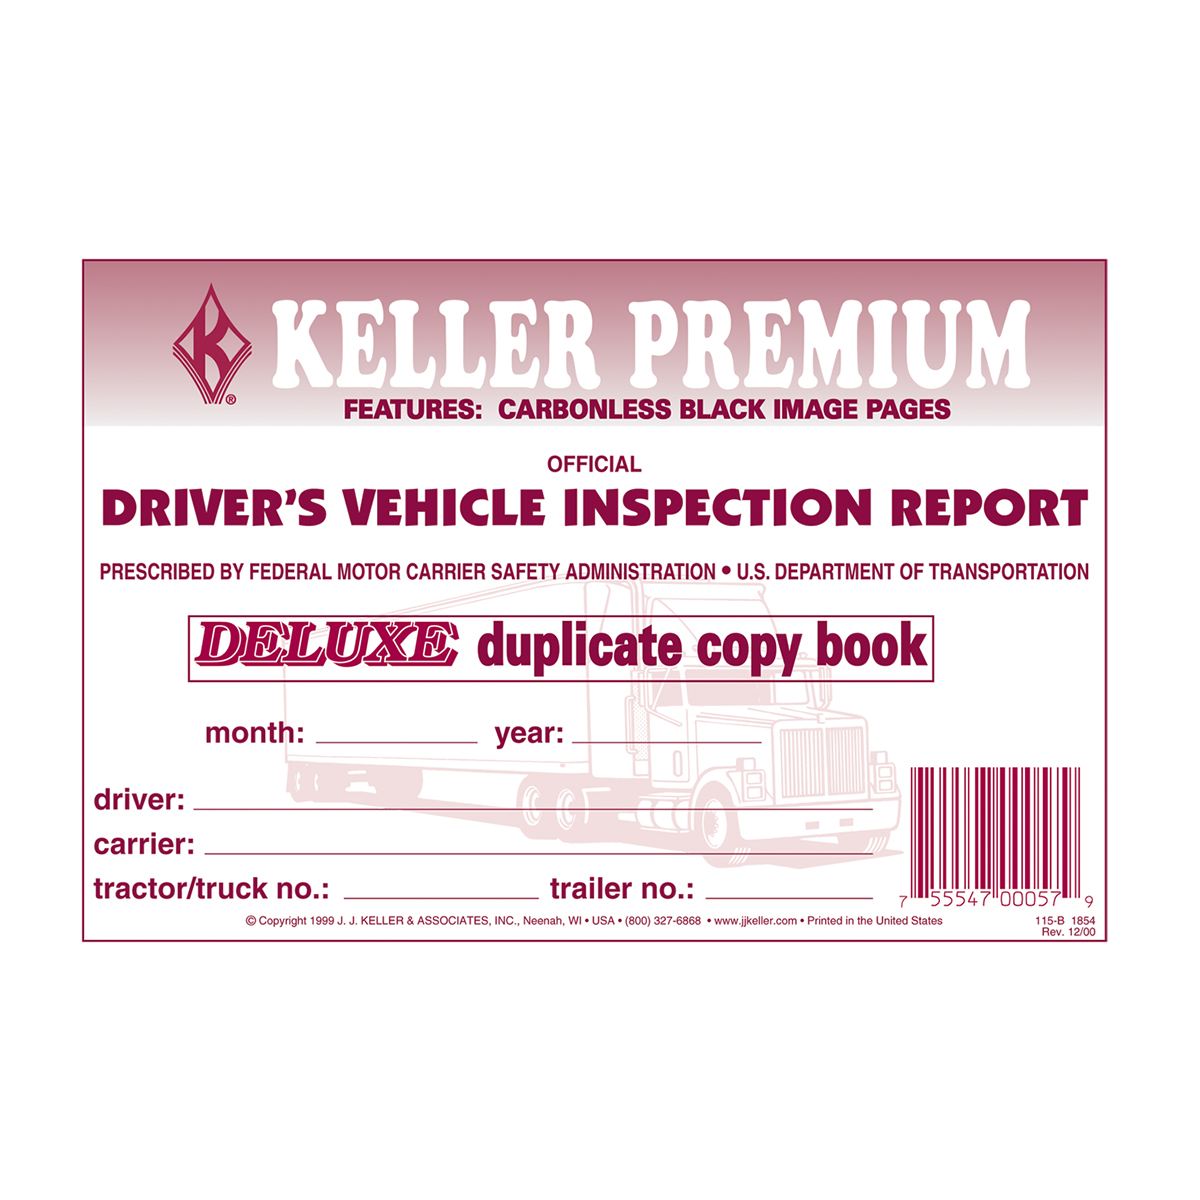 99902 Detailed Driver Vehicle Inspection Report Carbonless